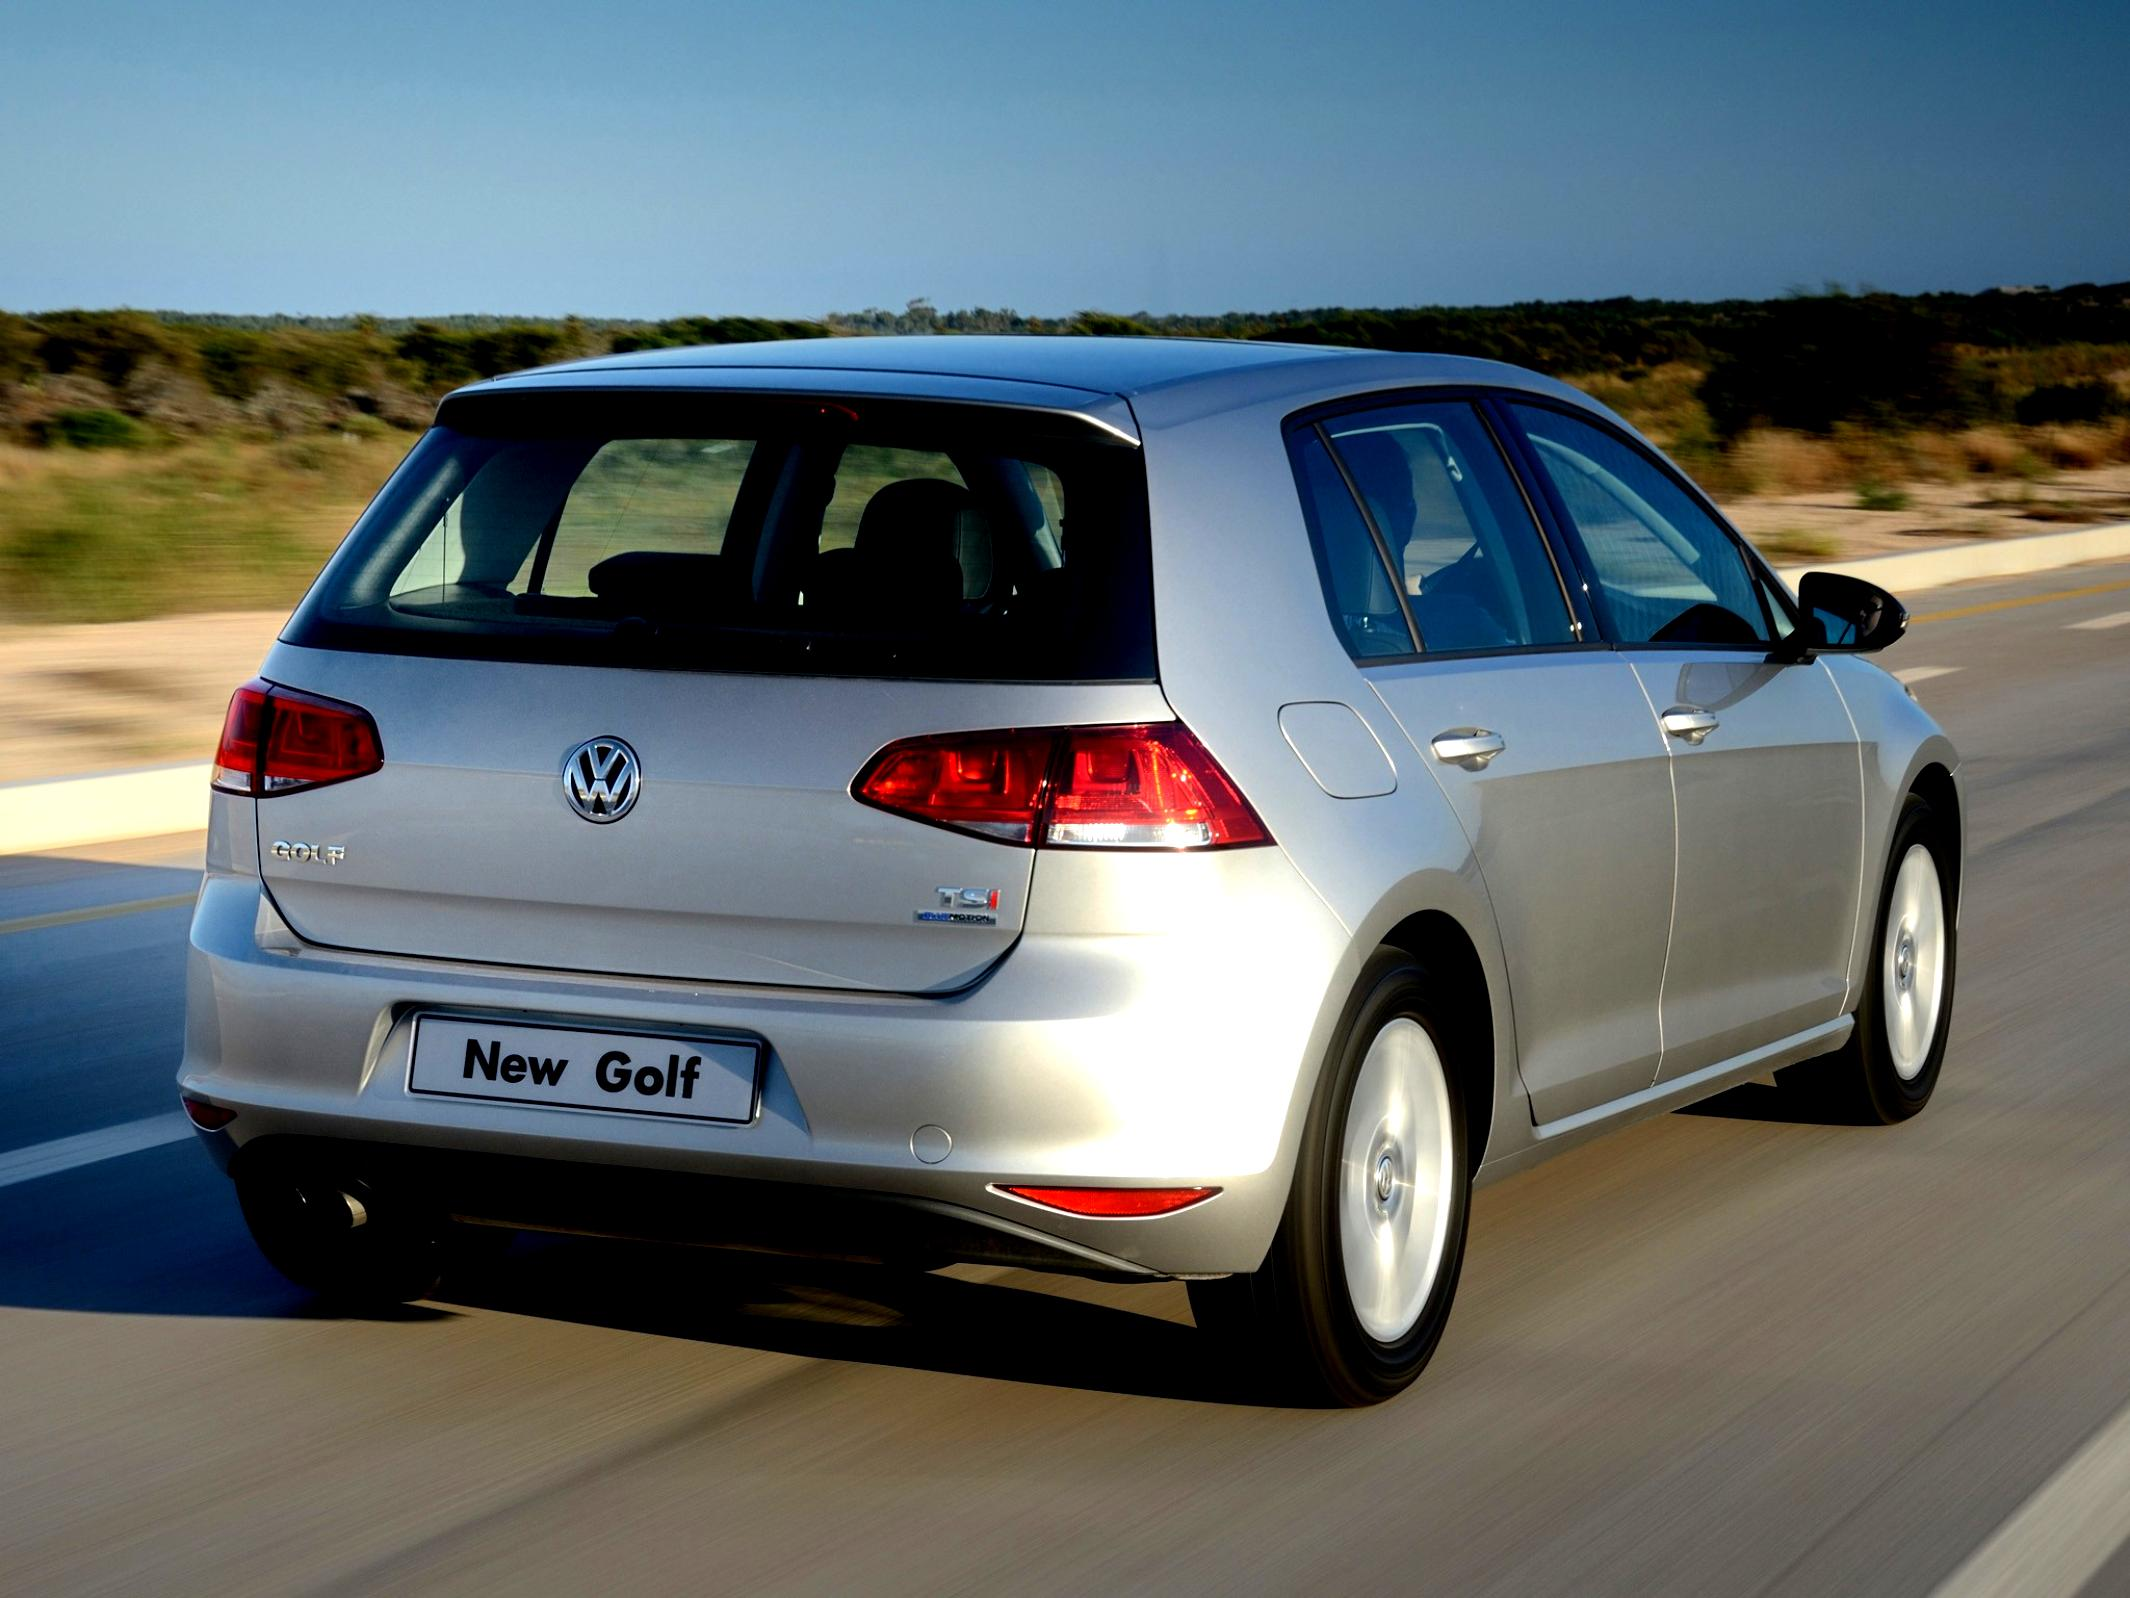 Volkswagen Golf VII 5 Doors 2012 #79